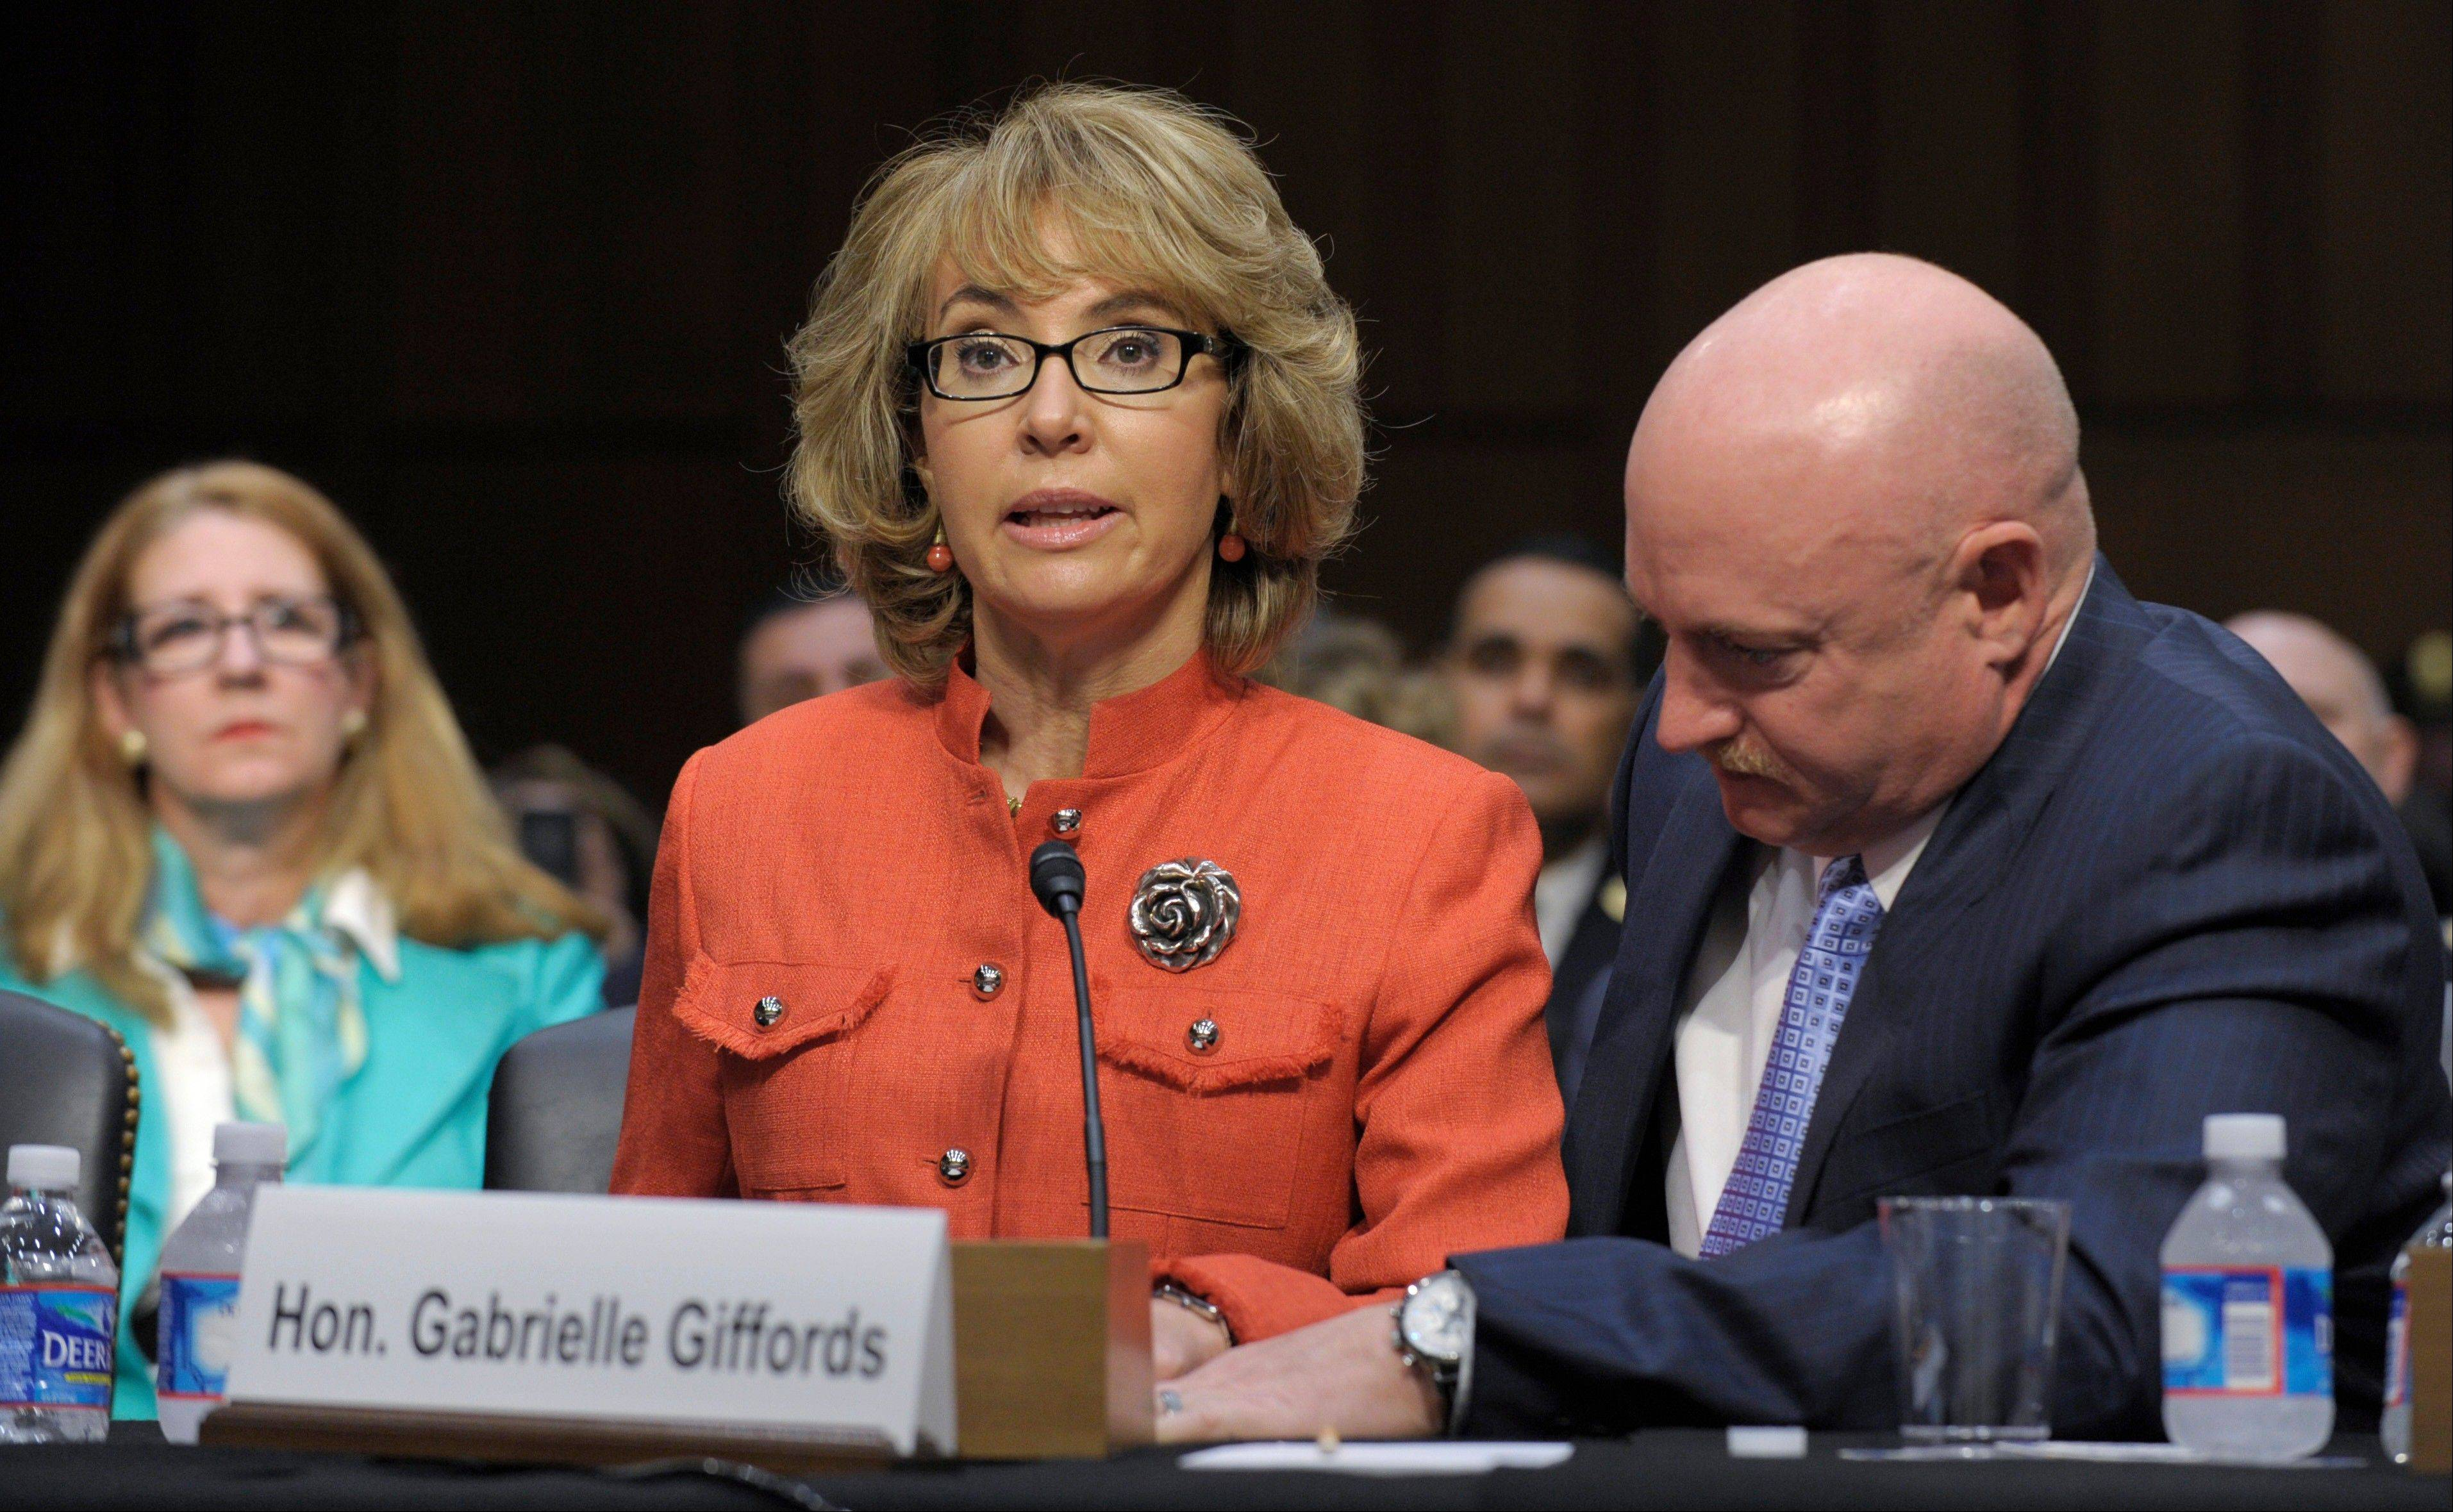 With halting voice, Giffords speaks out on guns